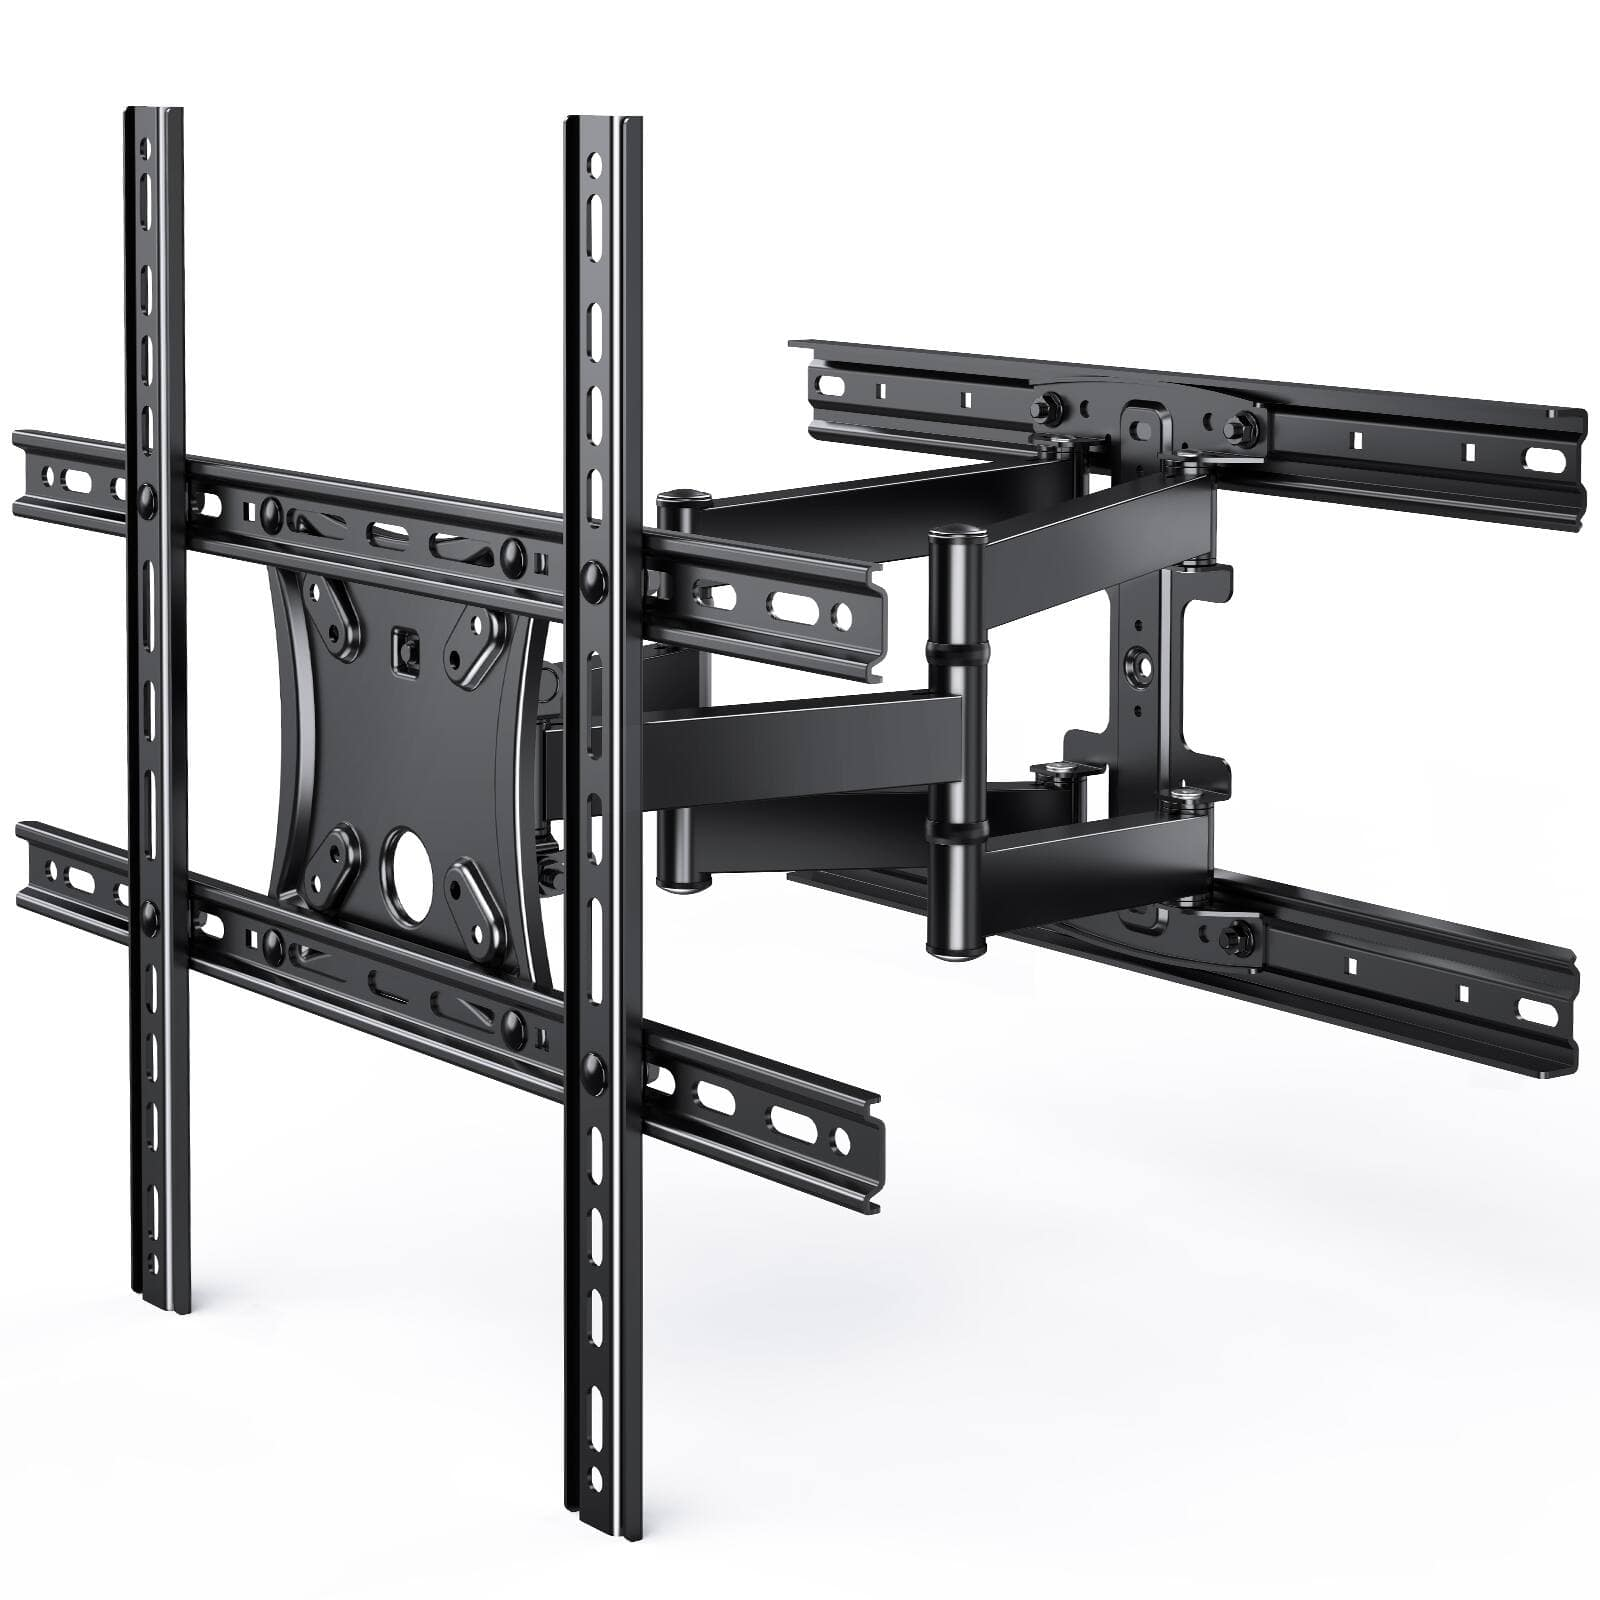 PERLESMITH Full Motion TV Wall Mount for 17-55 inch Flat/Curved TVs with Swivel Extension Tilting TV Bracket only $19.99 + Free Shipping on 35+